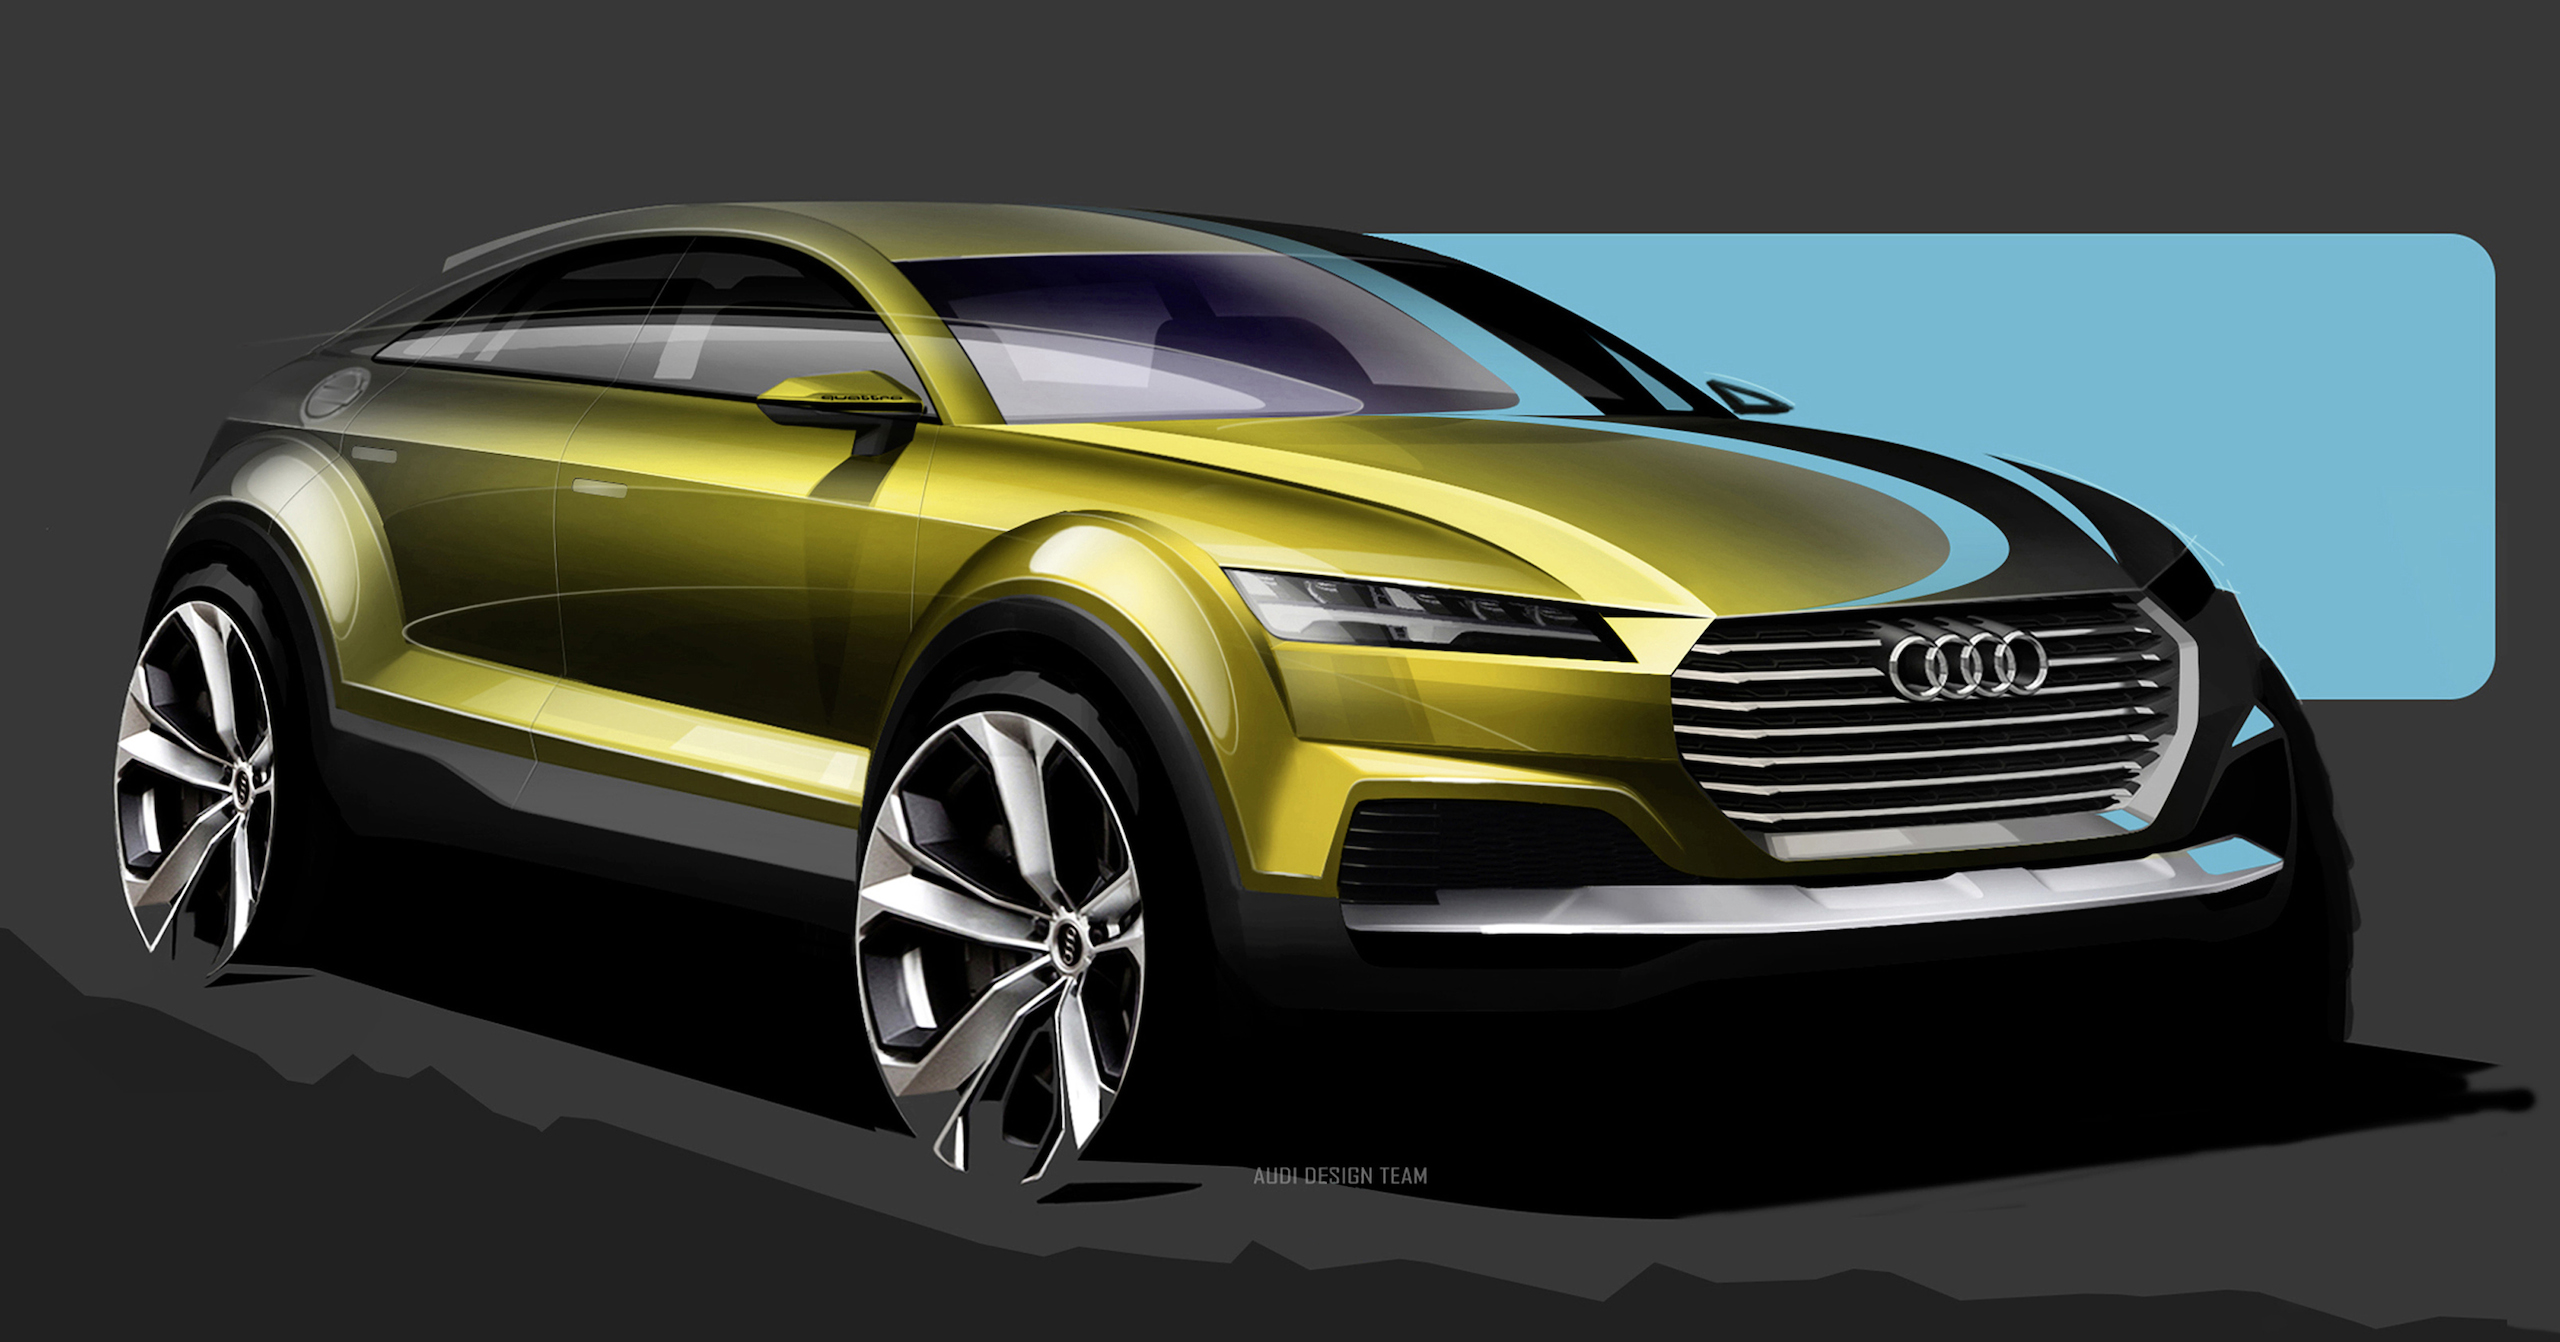 Audi S Beijing 2014 Show Car Could Preview A Q4 Suv Image